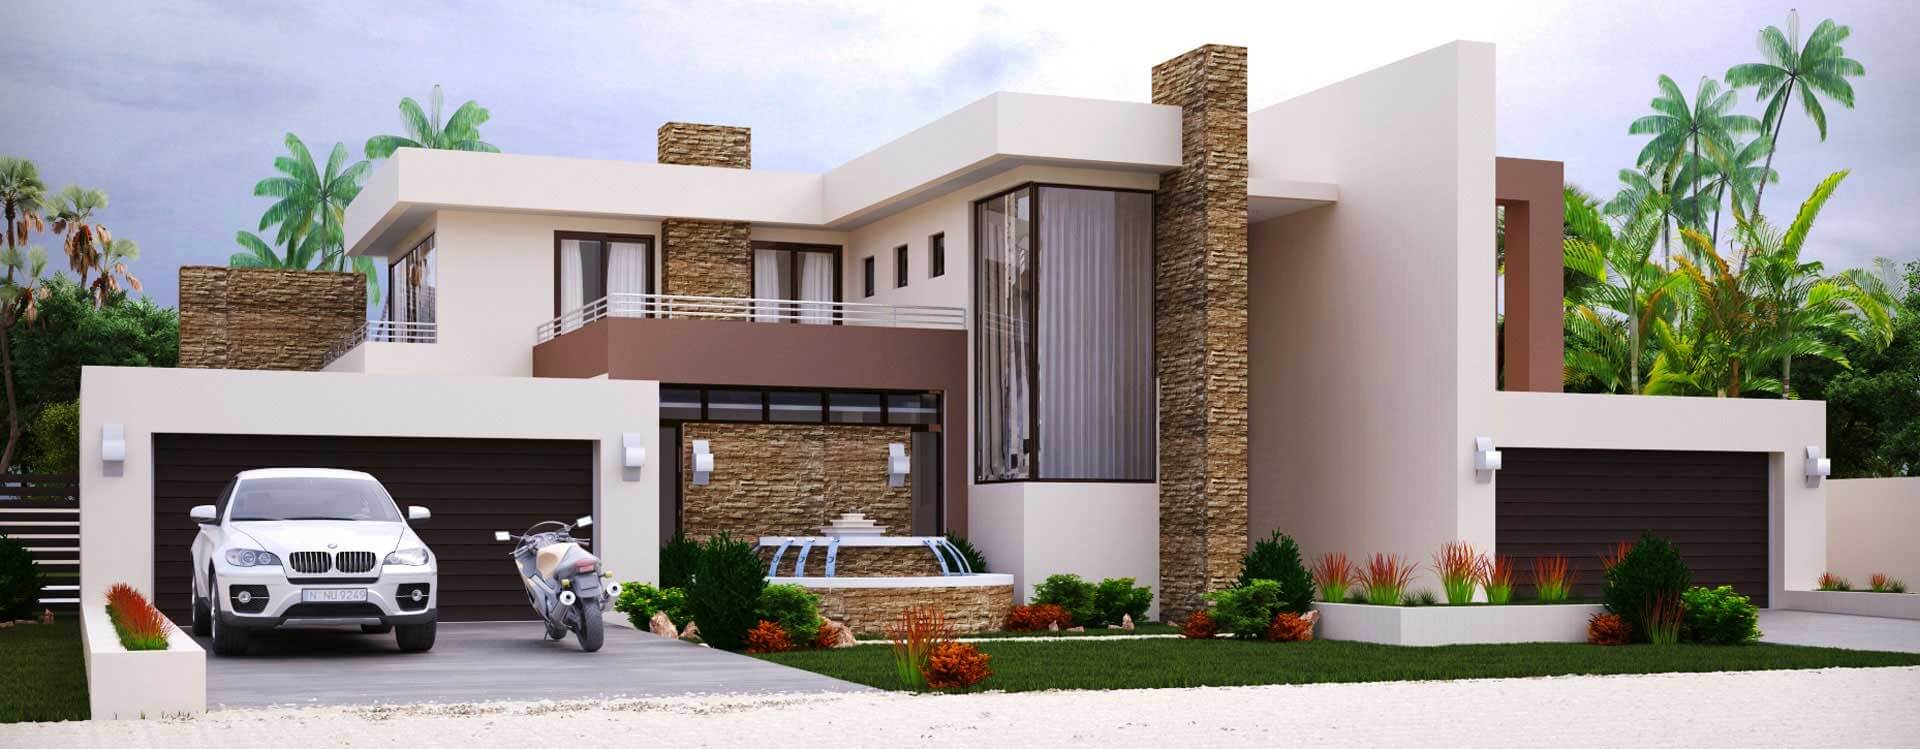 Modern House Plans house plans for sale online | modern house designs and plans